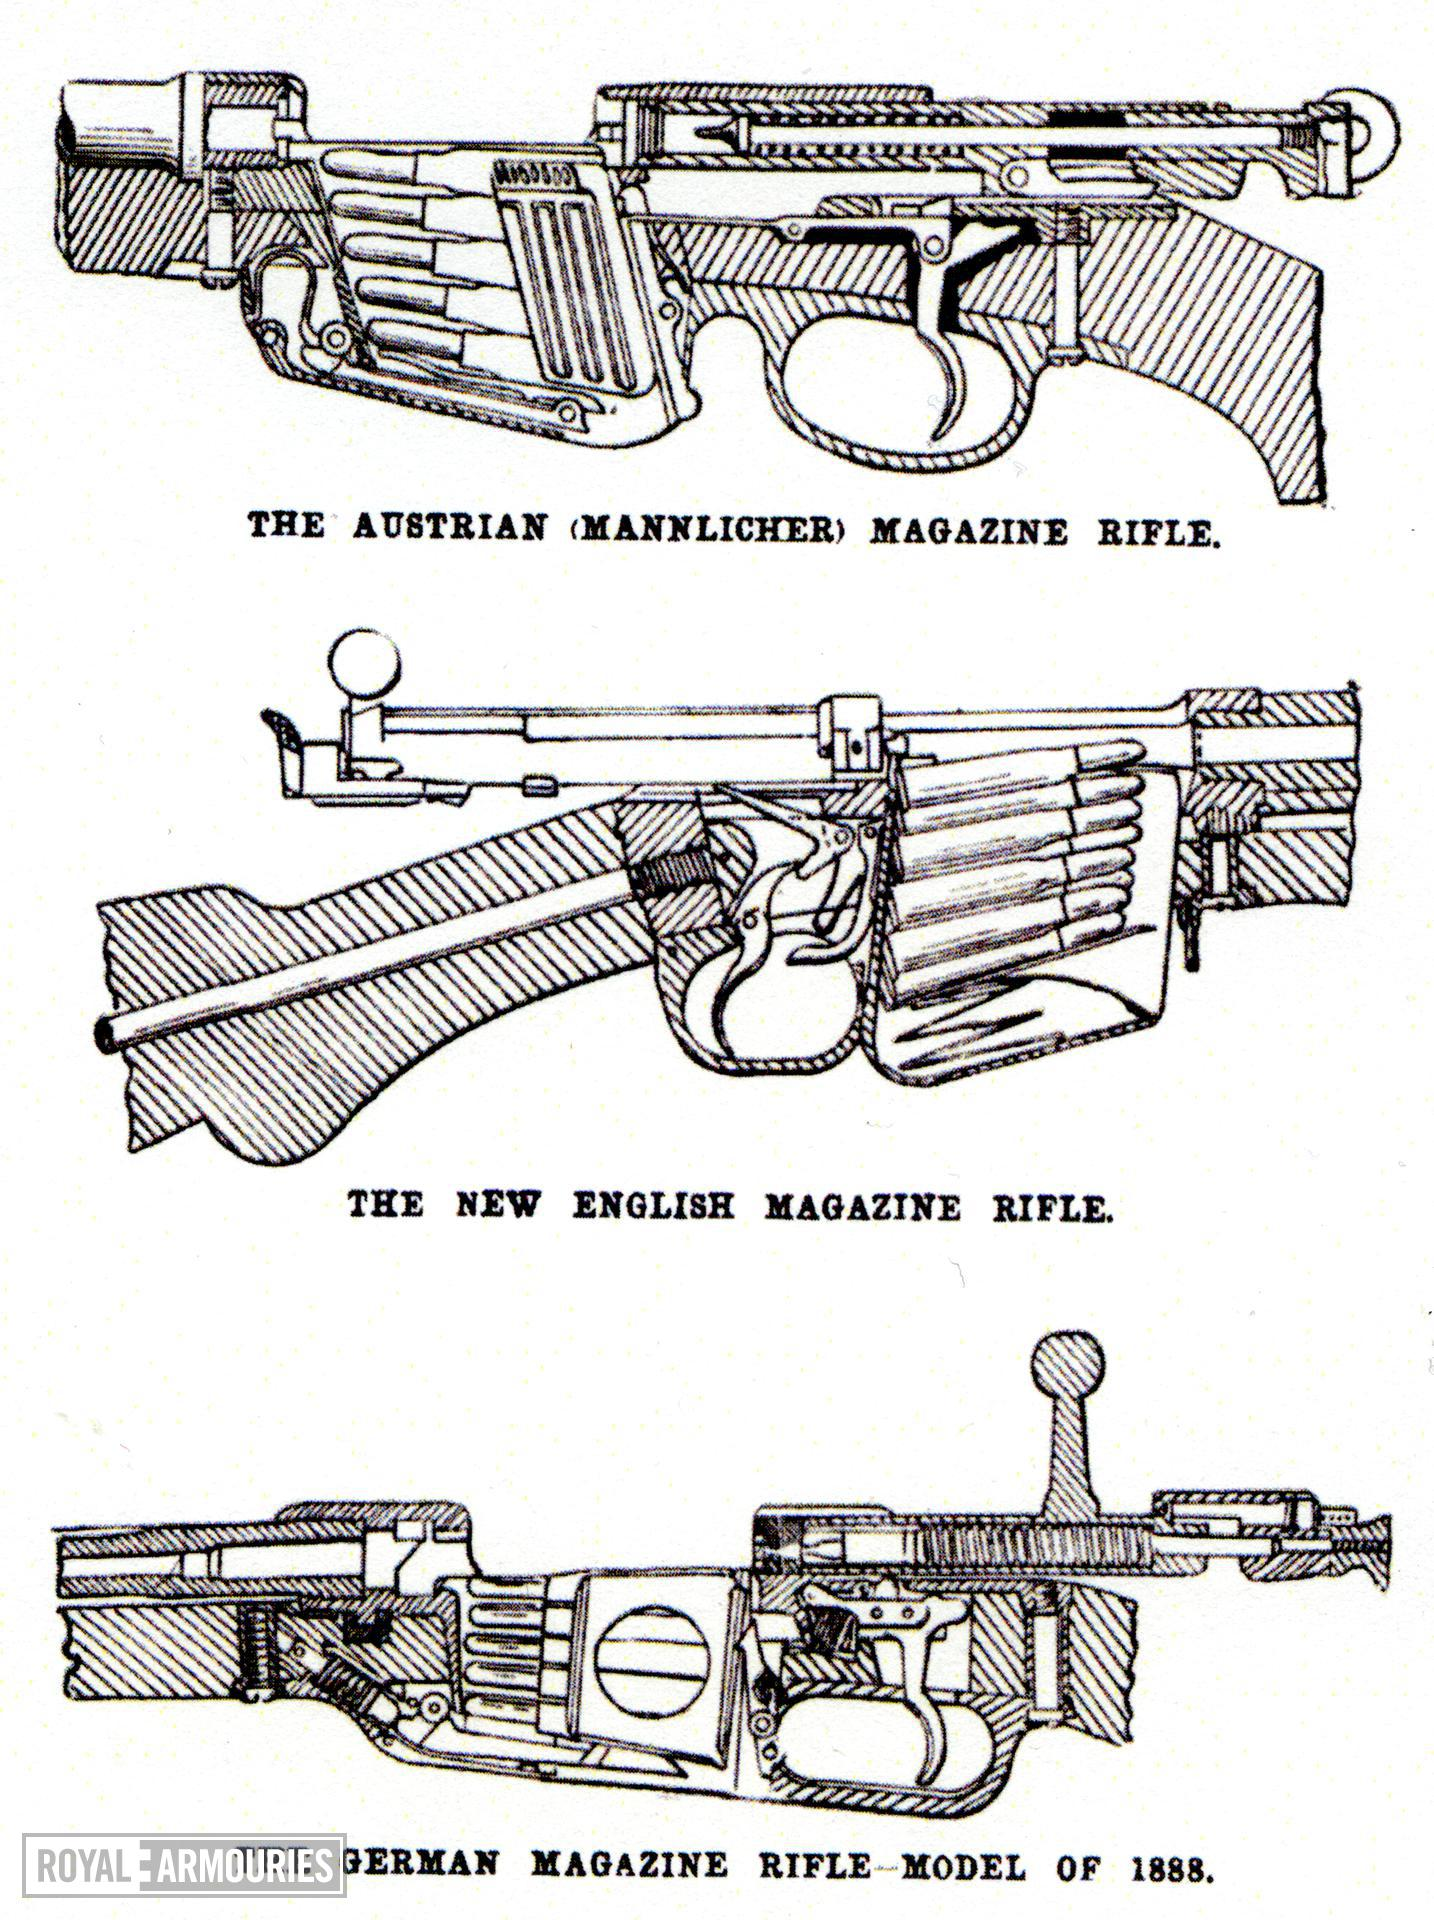 Journal article showing the actions of the Austrian Mannlicher, New English and the German magazine rifle model of 1888, taken from the Scientific American, August 22nd, 1891